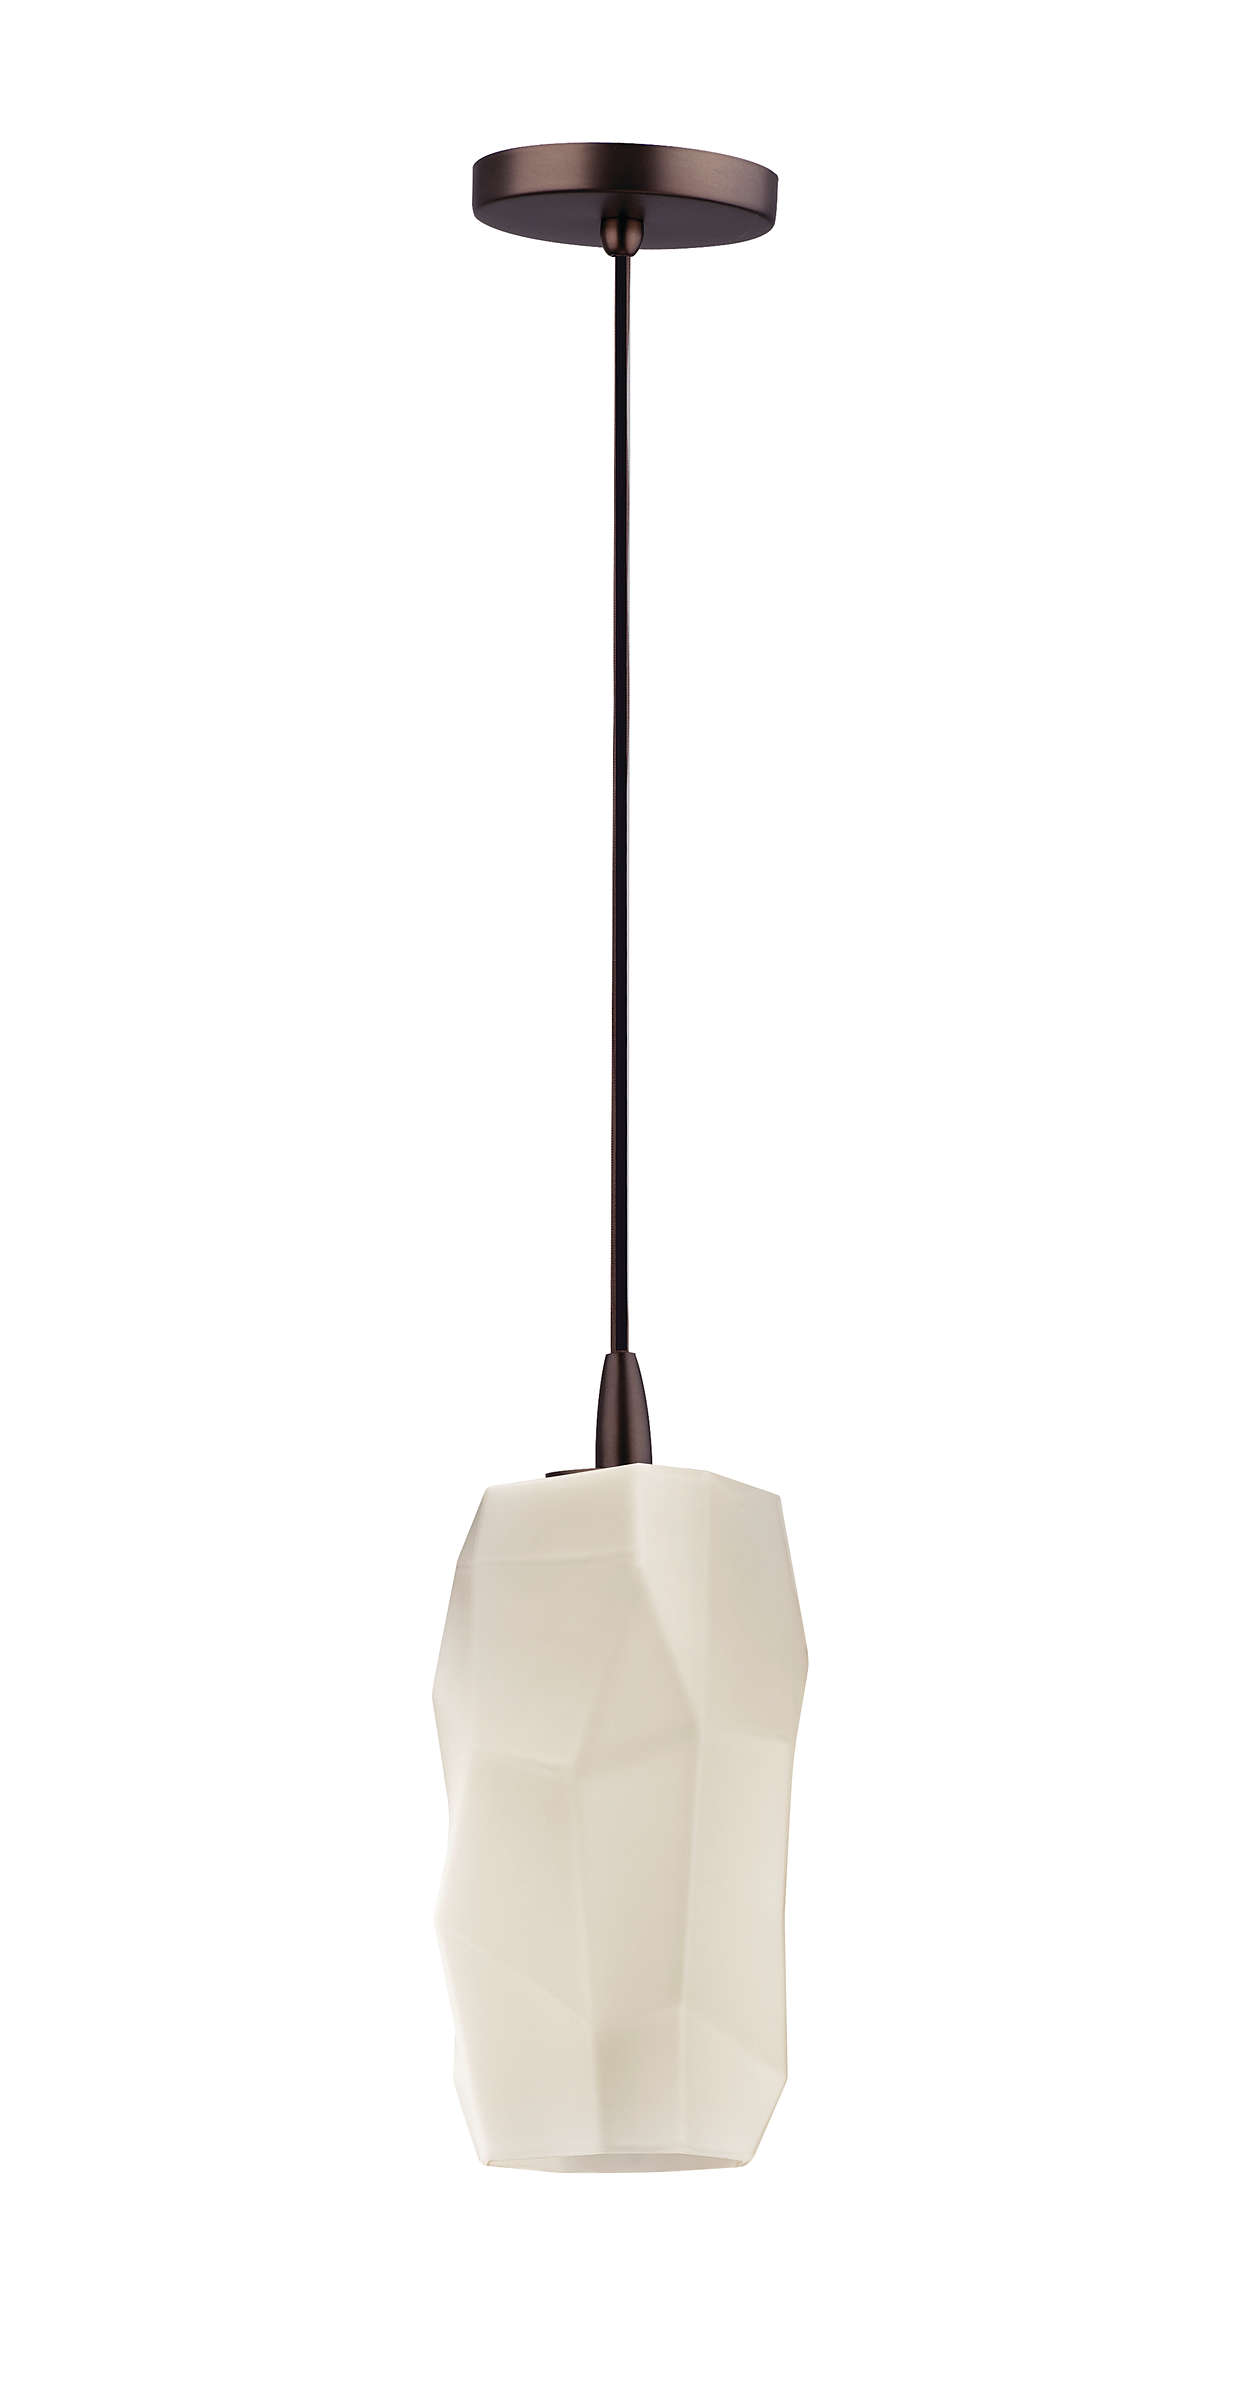 Facet 1-light pendant in Merlot Bronze finish